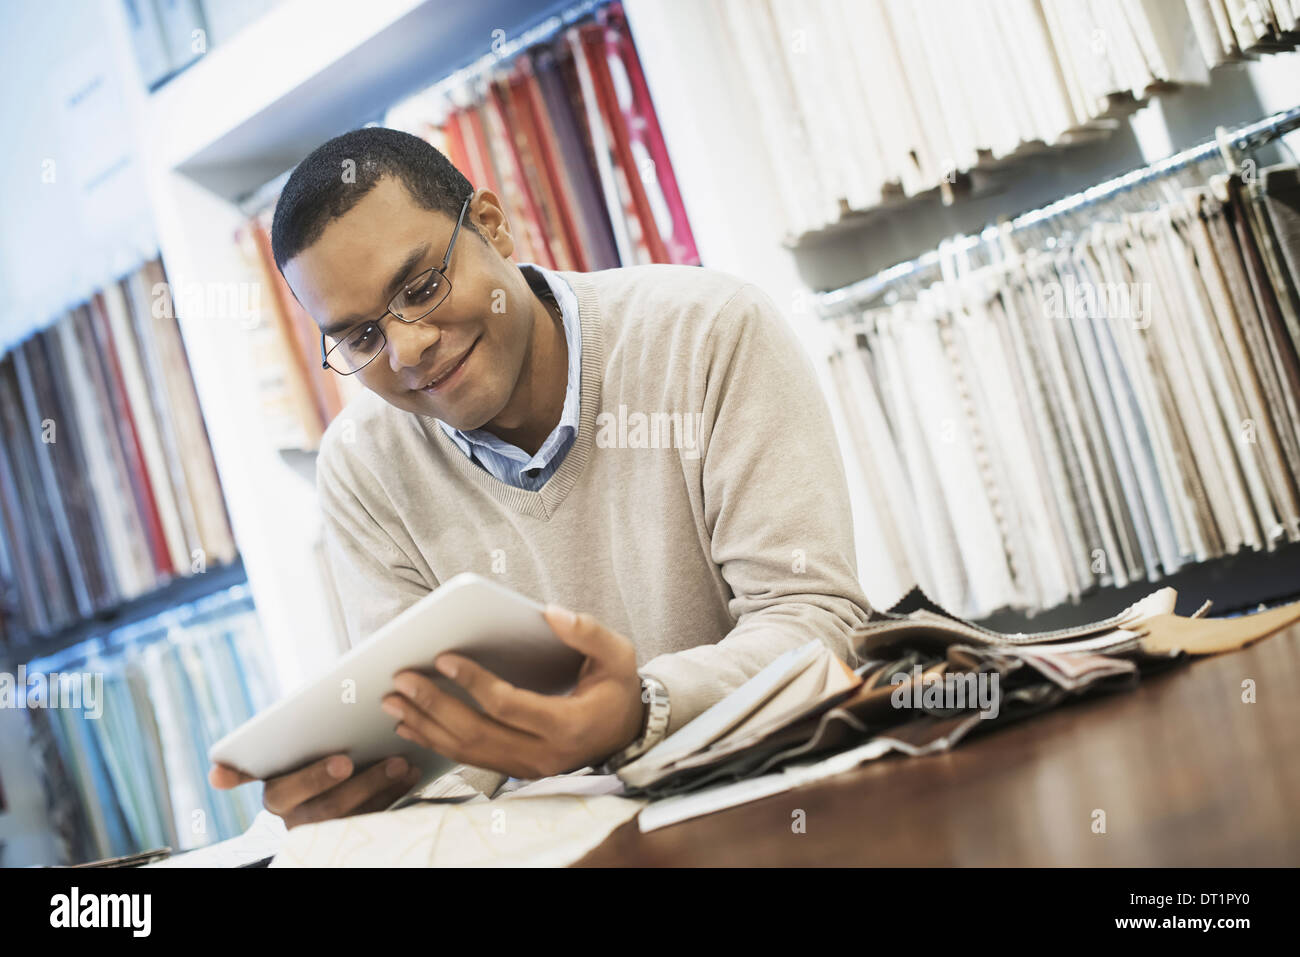 Man working in design shop with tablet - Stock Image